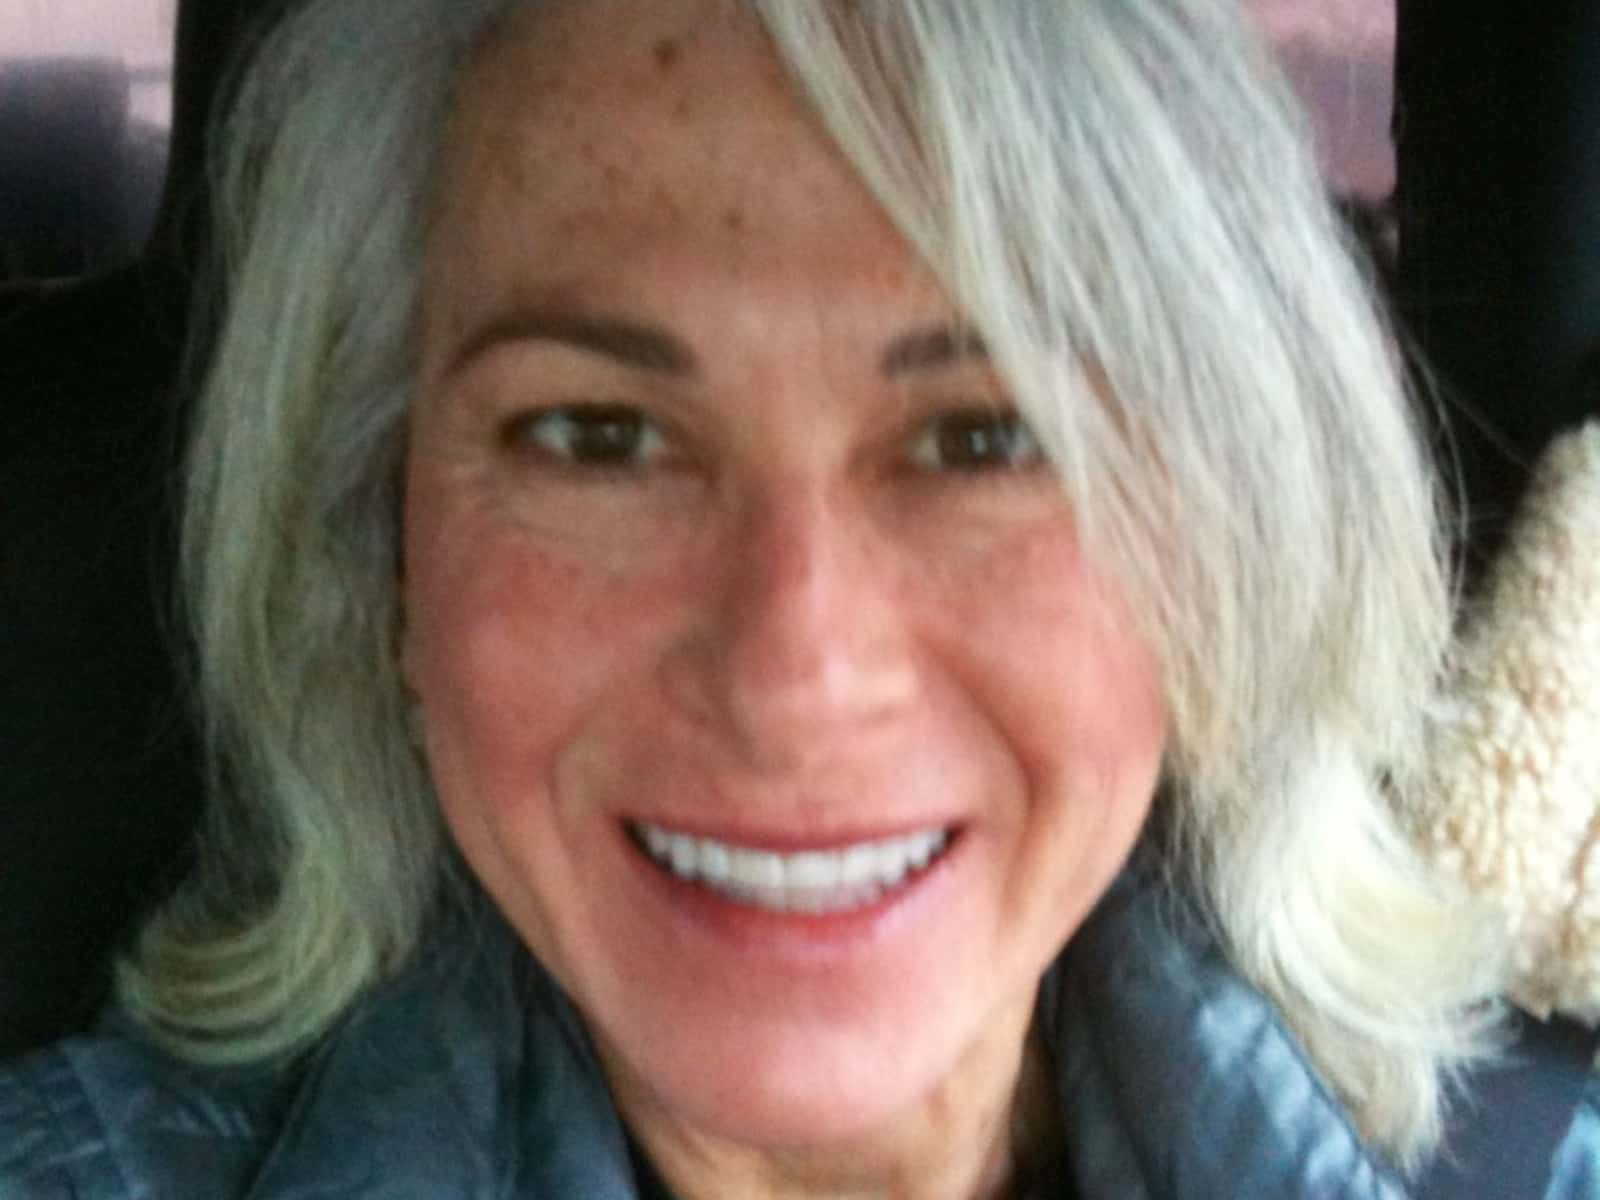 Marla from Bend, Oregon, United States